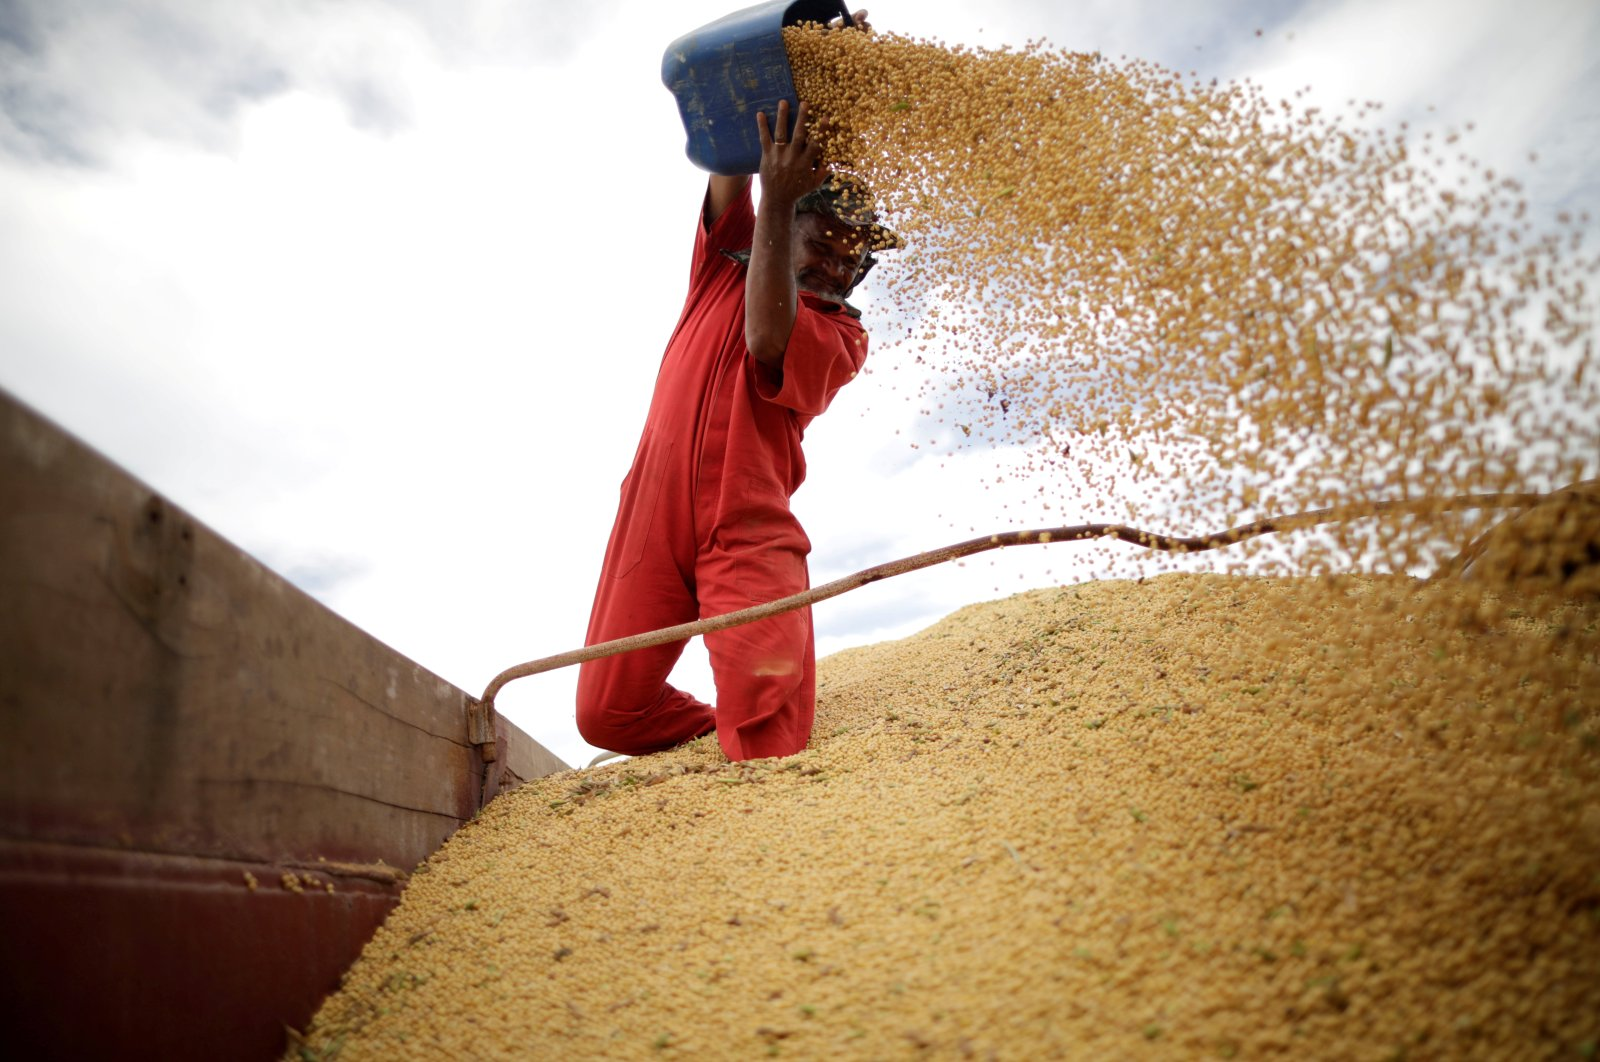 A worker inspects soybeans during the soy harvest near the town of Campos Lindos, Brazil, Feb. 18, 2018. (Reuters Photo)